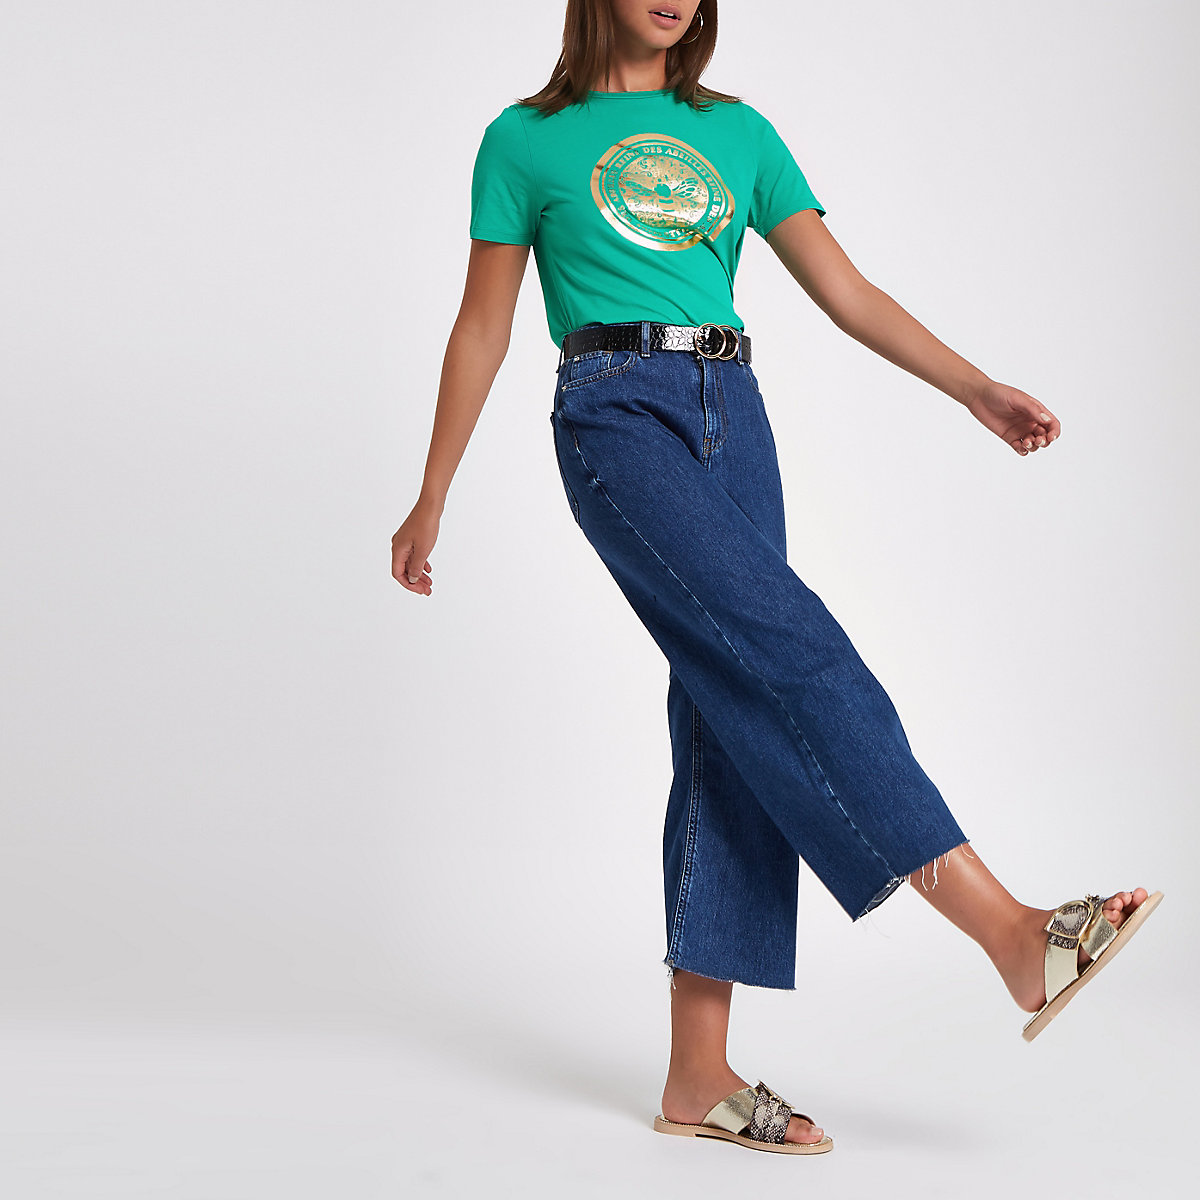 Green bee foil print fitted T-shirt